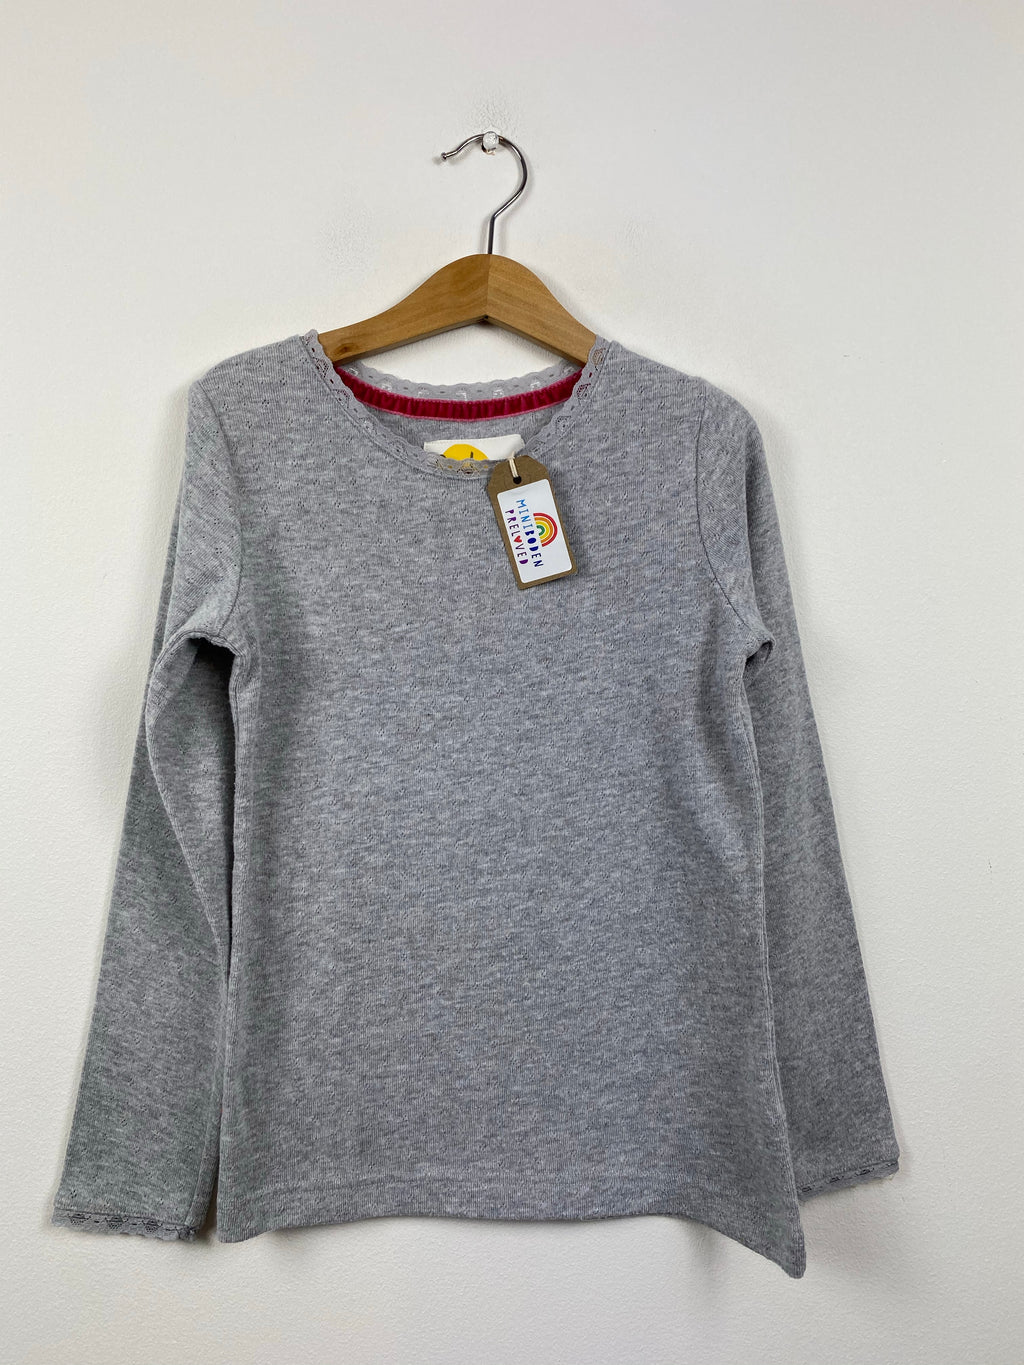 Super Soft Grey Pointelle Top (7-8 Years)